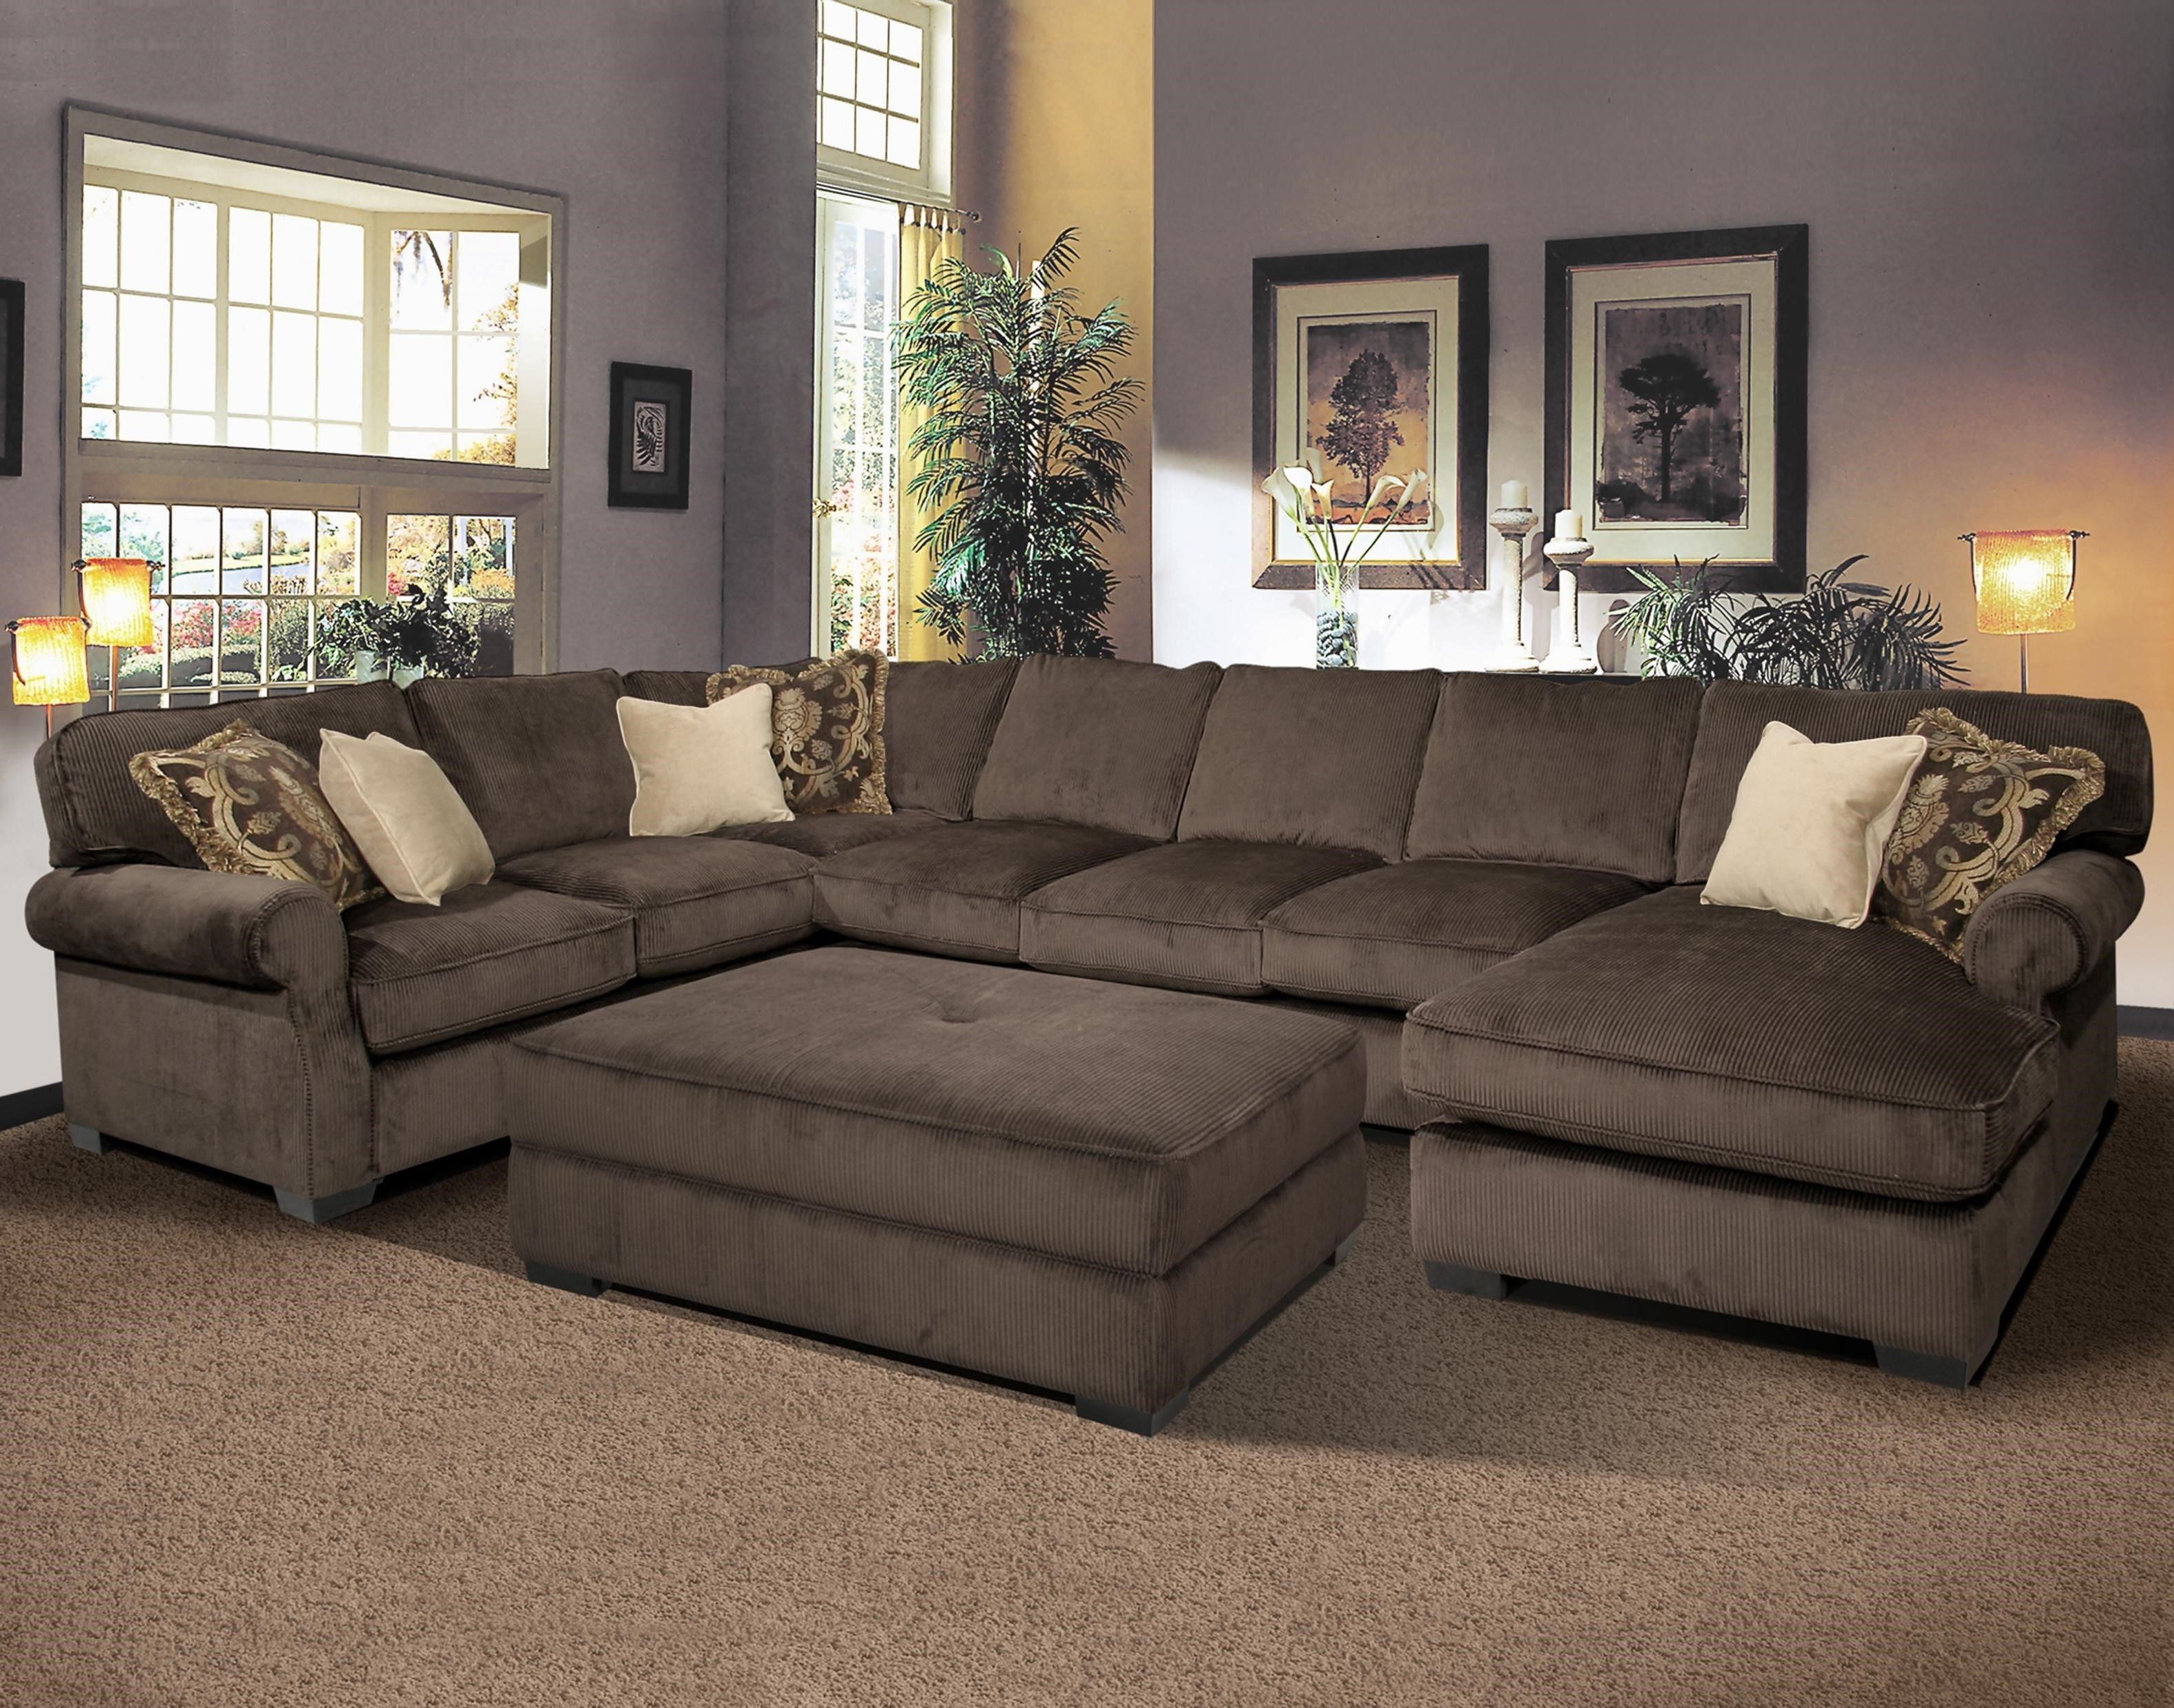 Best And Newest Comfortable Living Room Sofas Design With Elegant Overstuffed Pertaining To Overstuffed Sofas And Chairs (View 2 of 20)